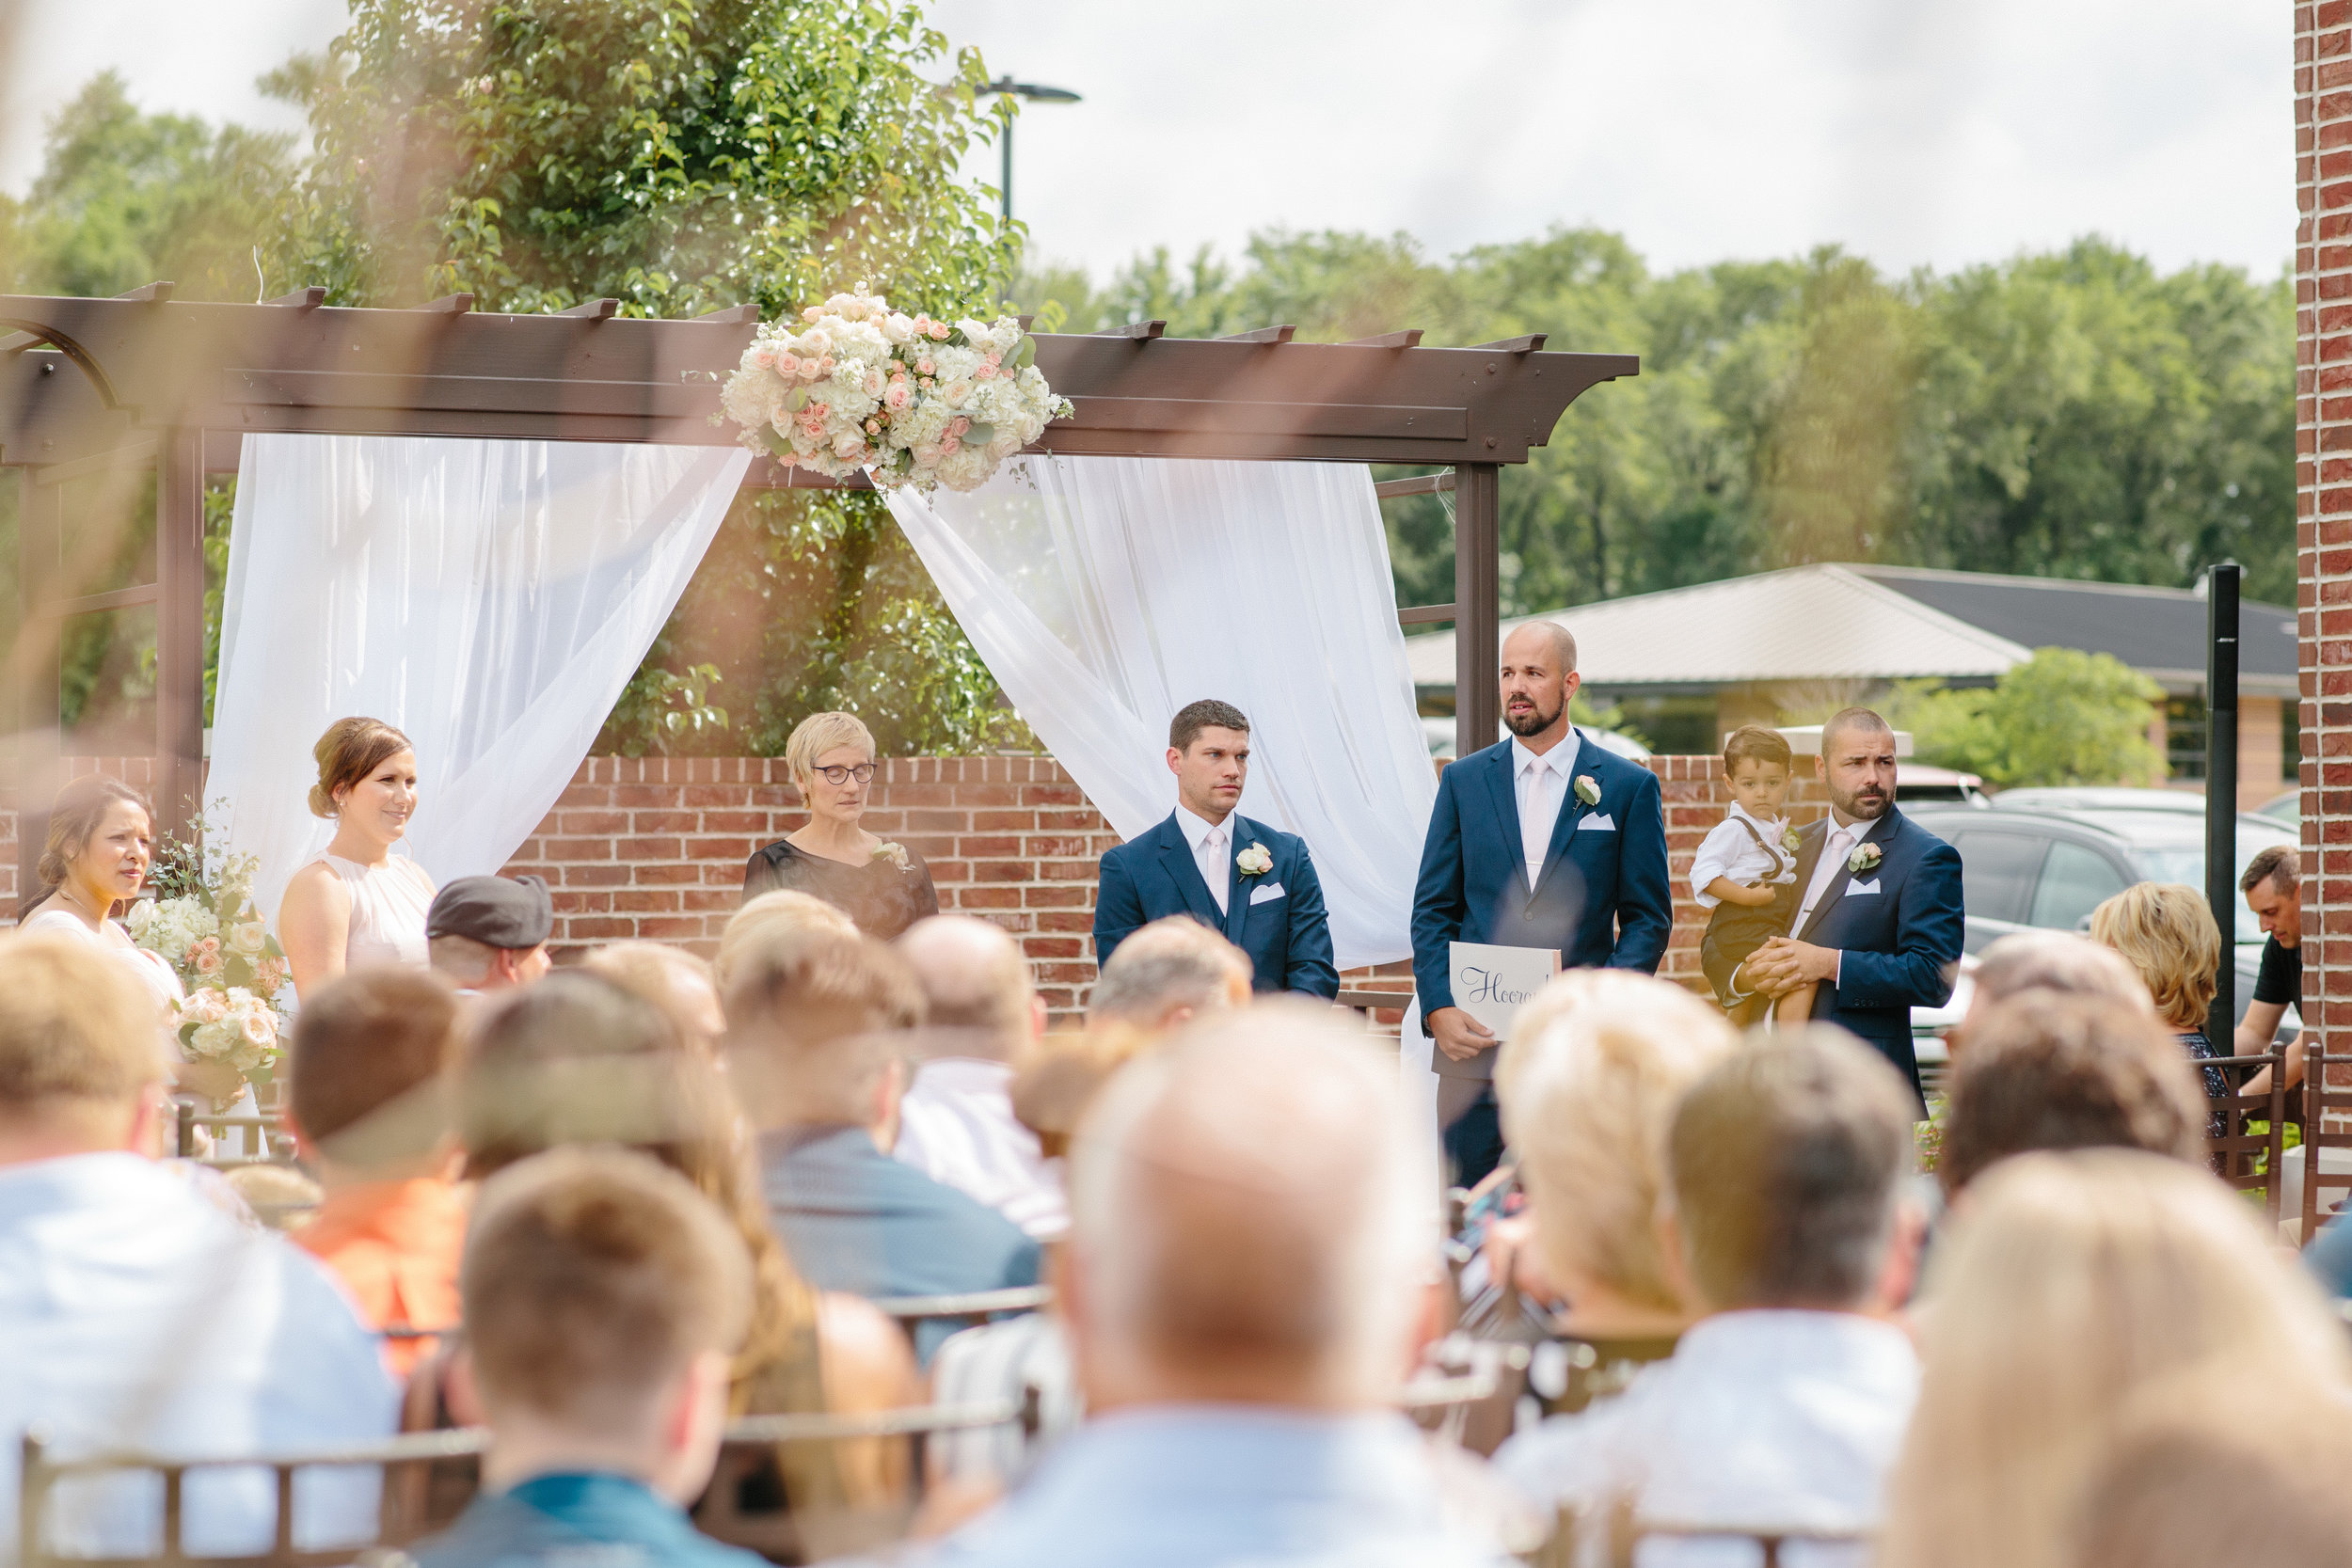 outdoor wedding venues iowa des moines